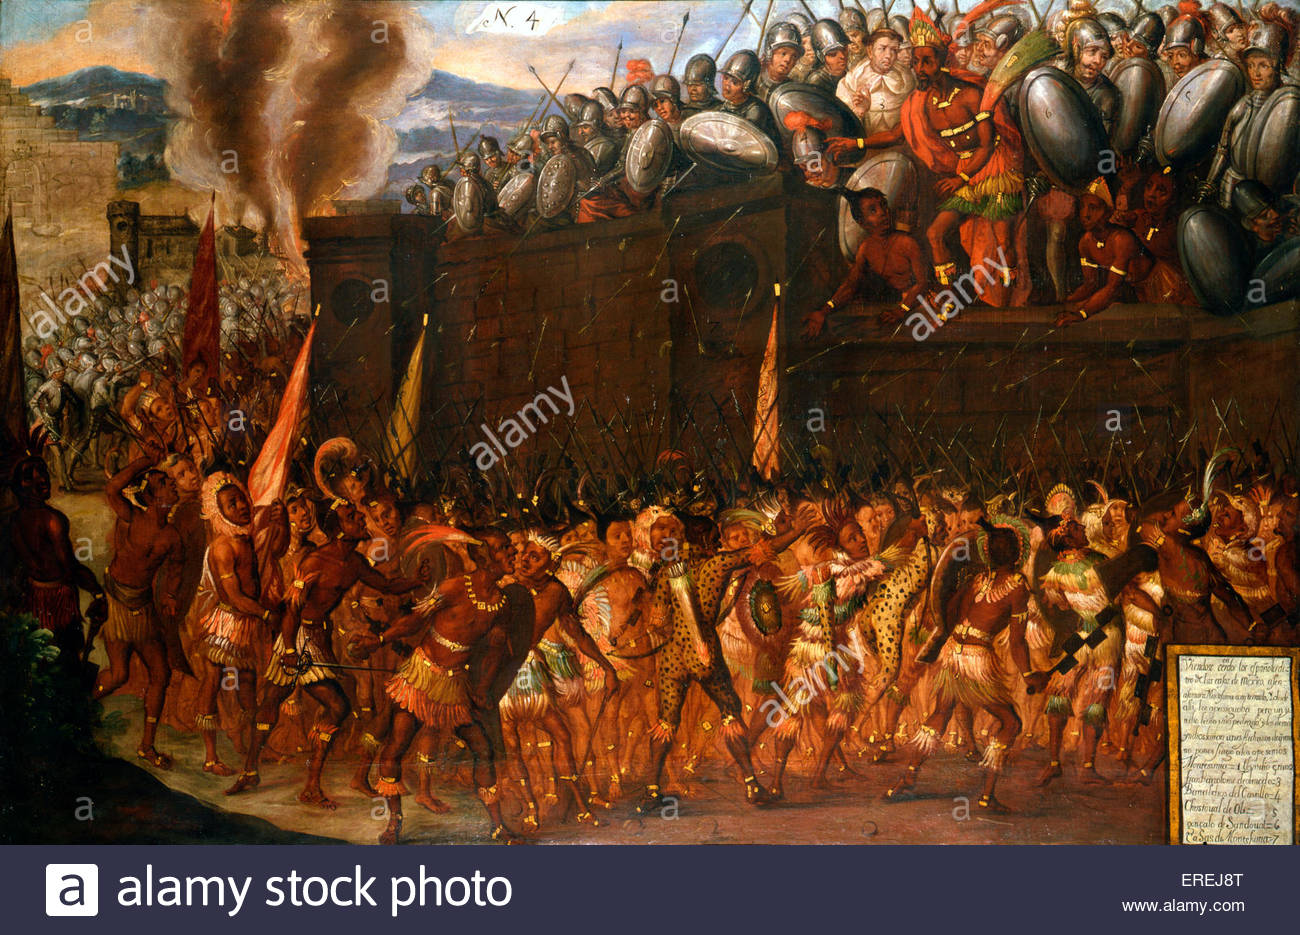 Aztec Empire Stock Photos & Aztec Empire Stock Images - Alamy